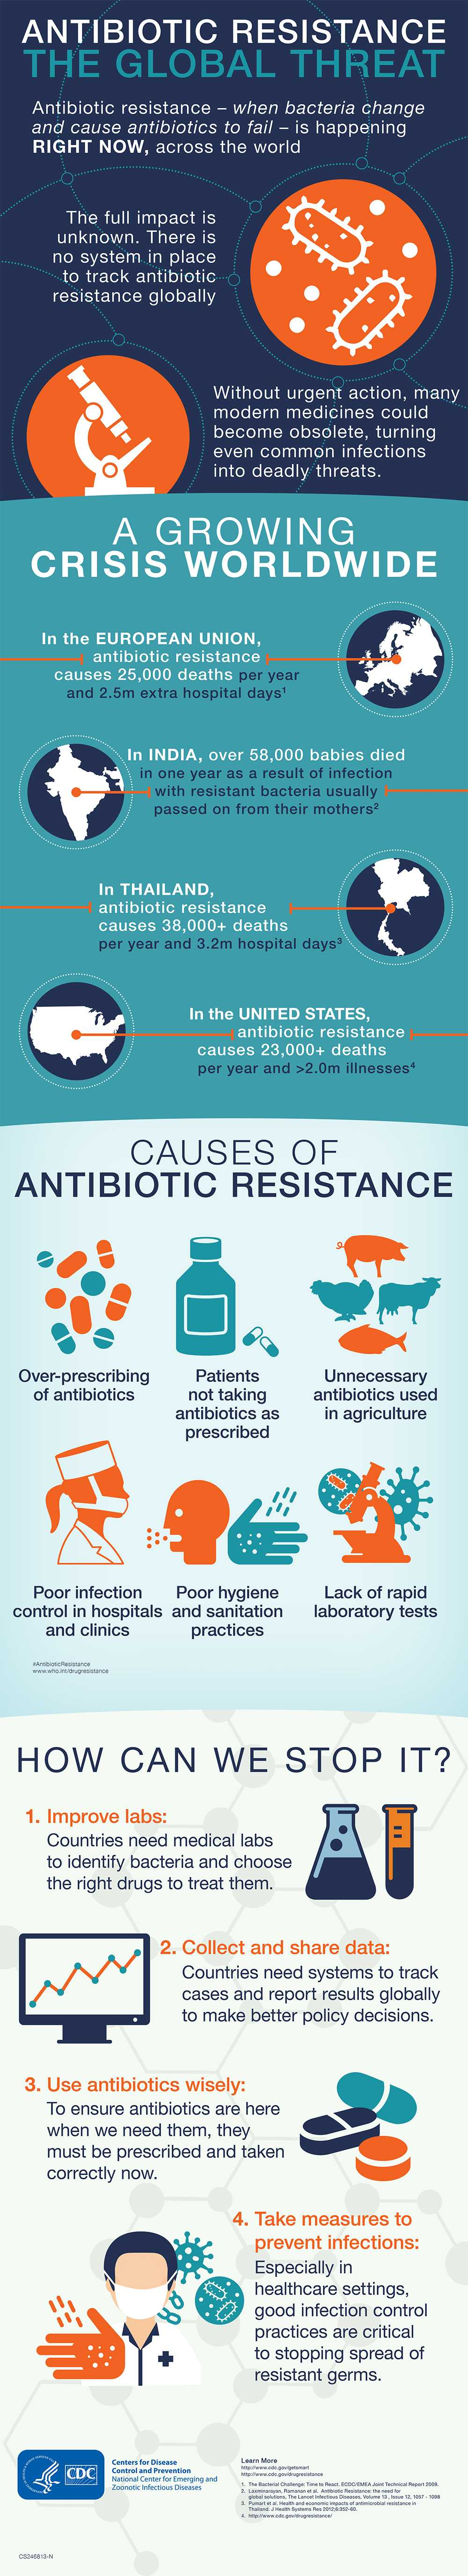 CDC Global Health - Infographics - Antibiotic Resistance The Global